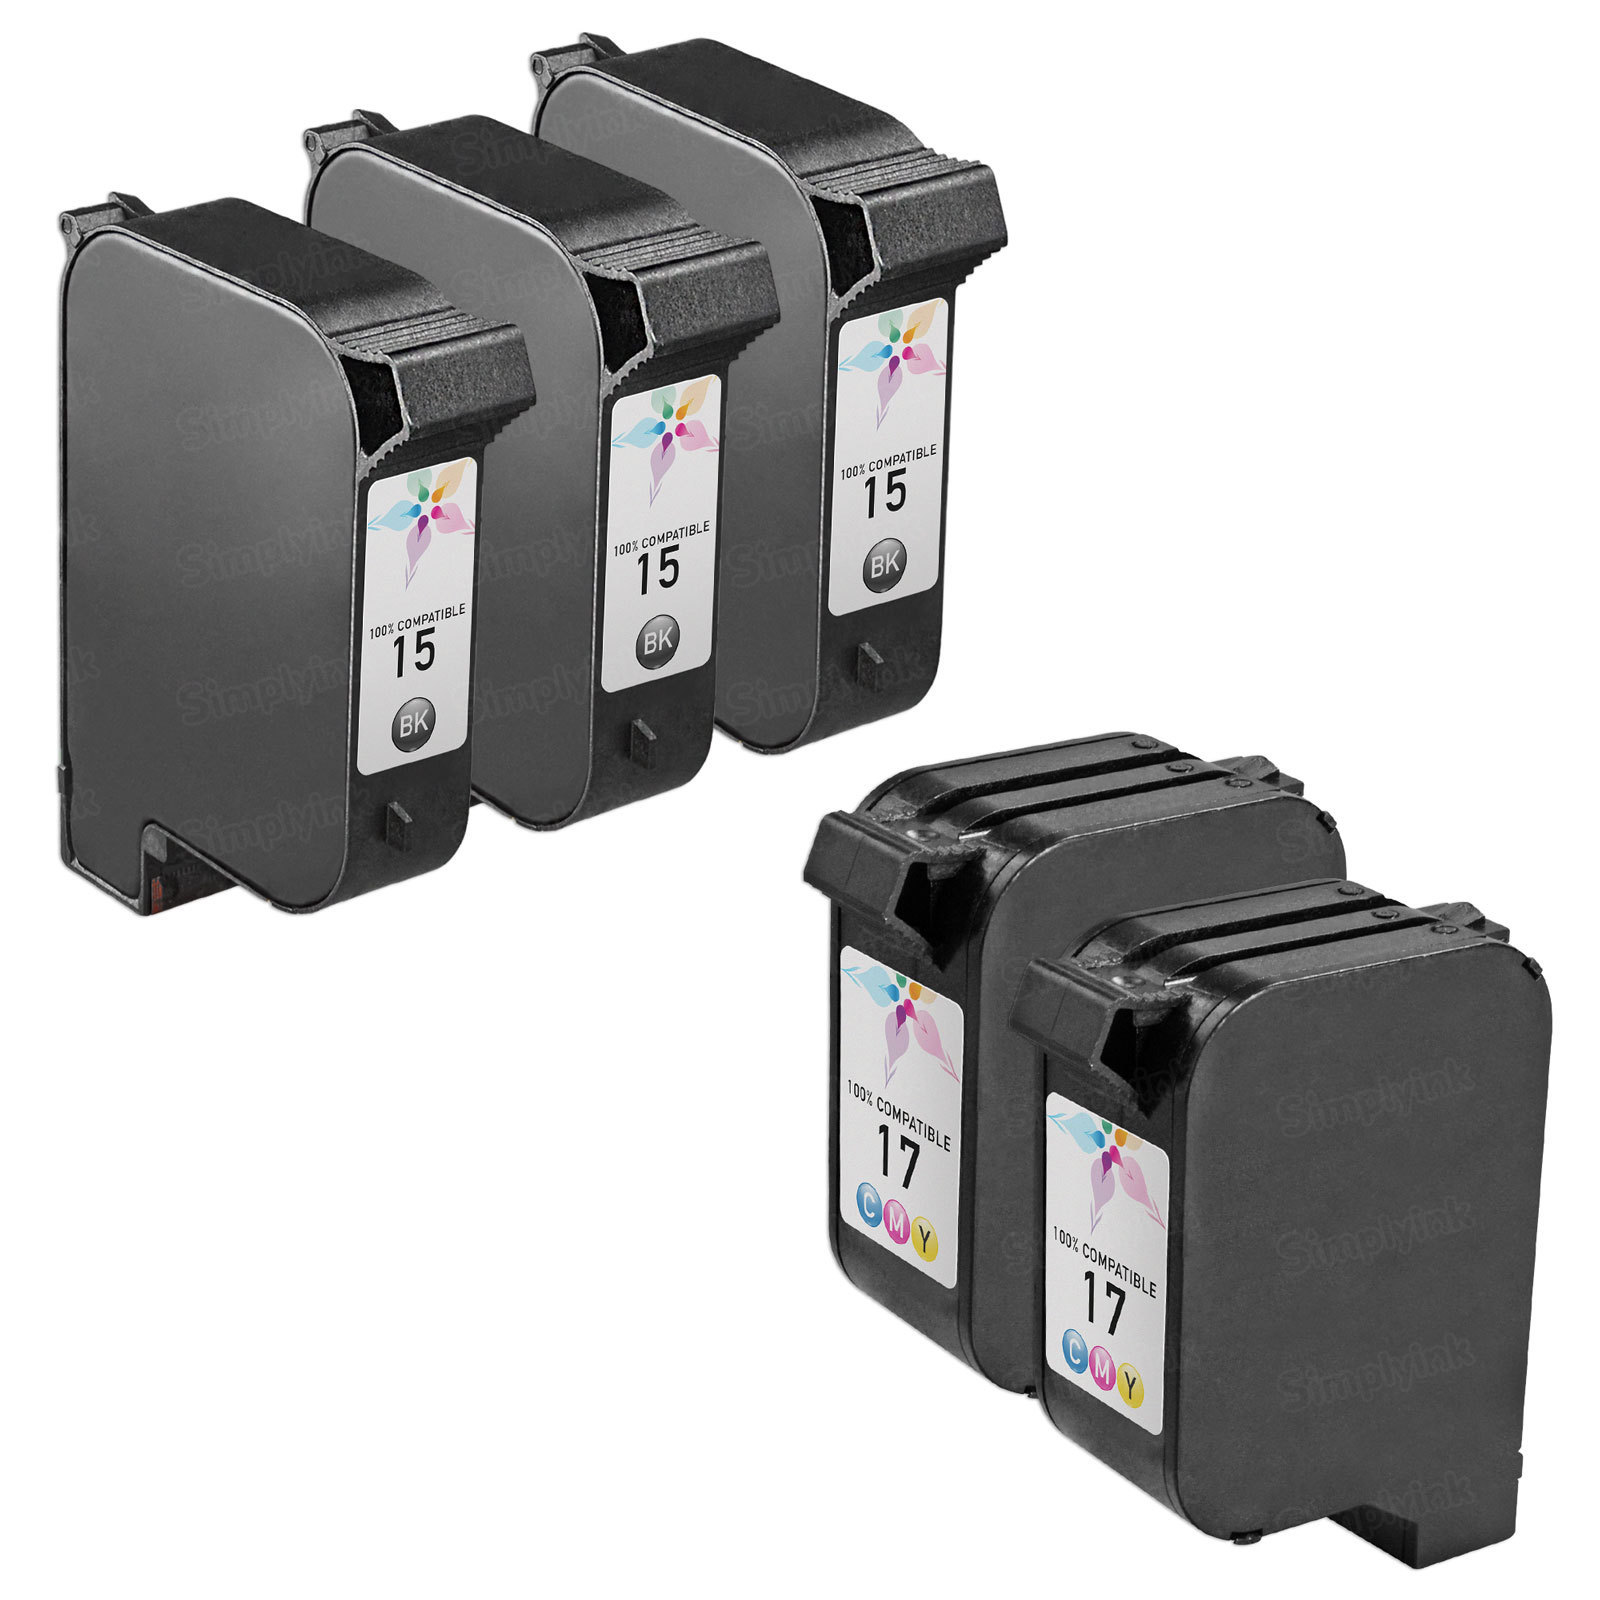 Remanufactured Bulk Set of 5 Ink Cartridges to Replace HP 15 & HP 17 (3 BK, 2 CLR)